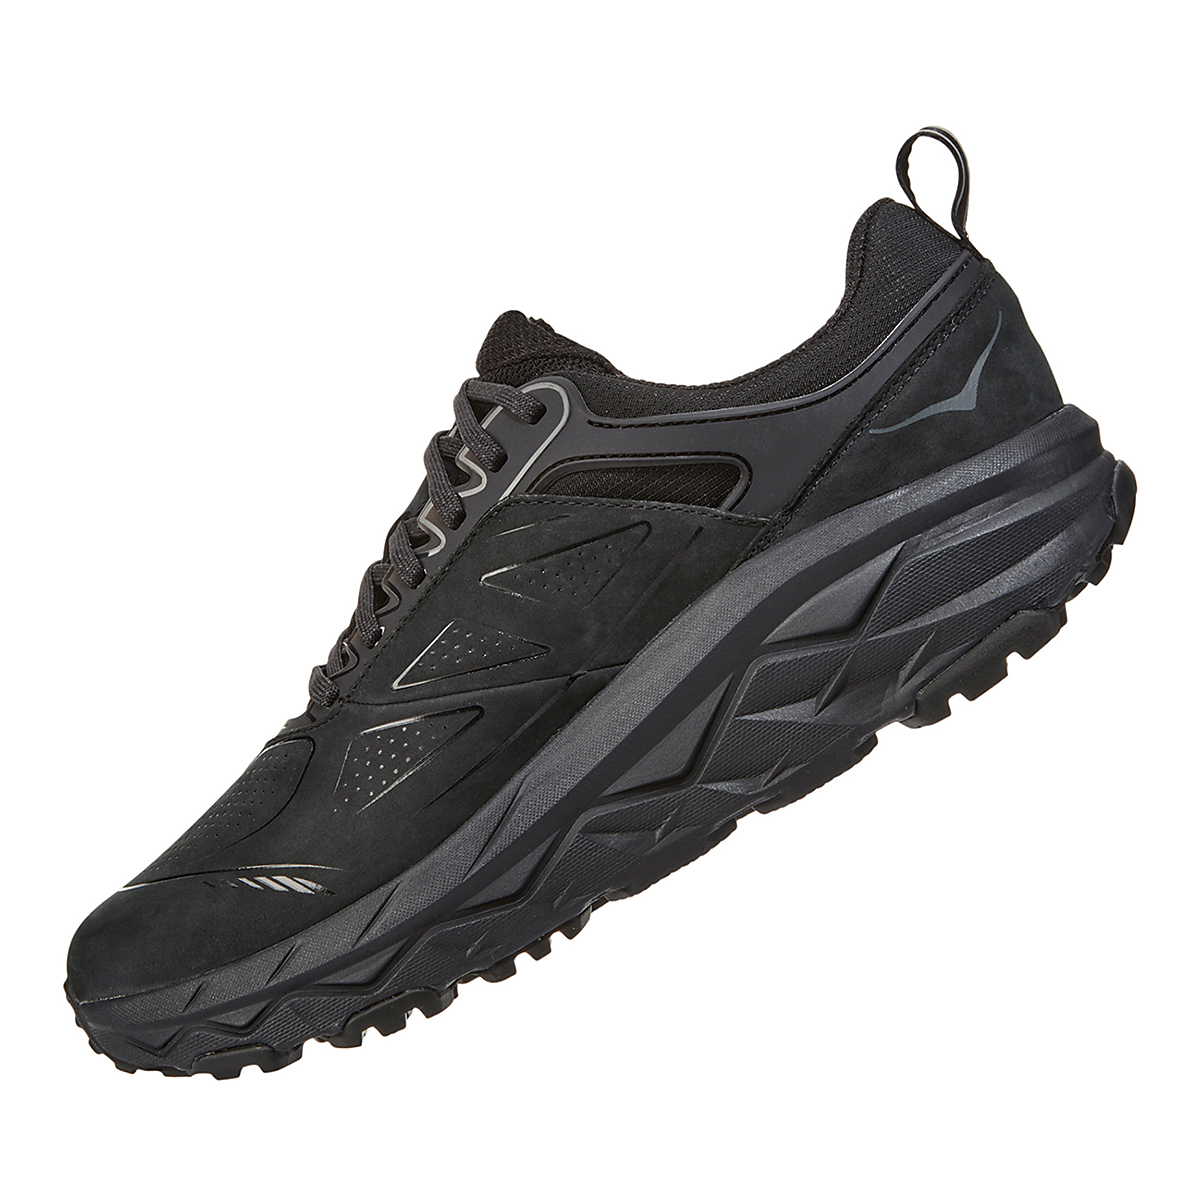 Men's Hoka One One Challenger Low Gore-Tex Trail Running Shoe, , large, image 3